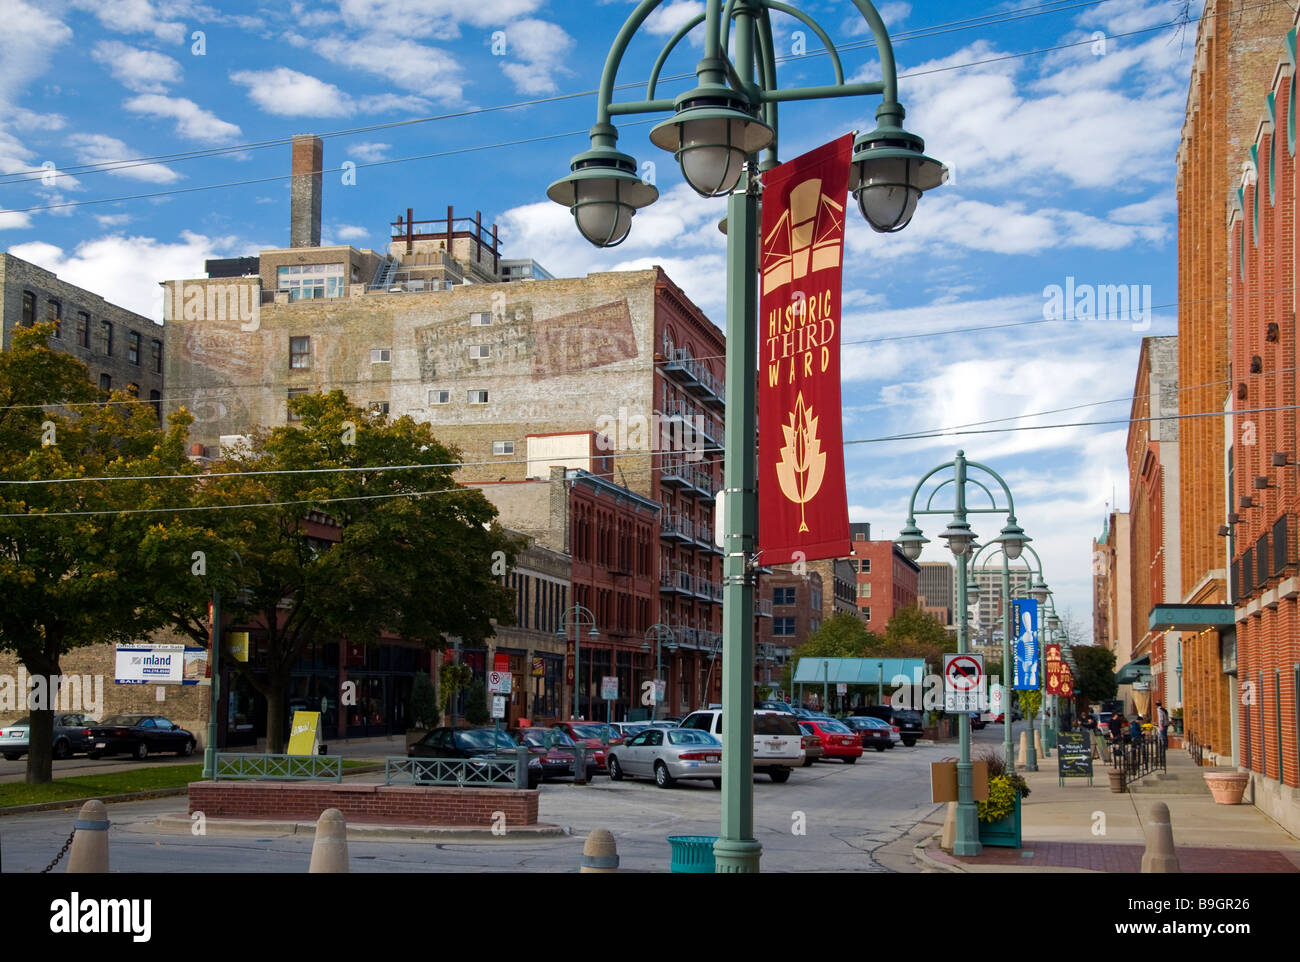 The Third Ward Historic, a renovated warehouse district in Milwaukee, Wisconsin - Stock Image